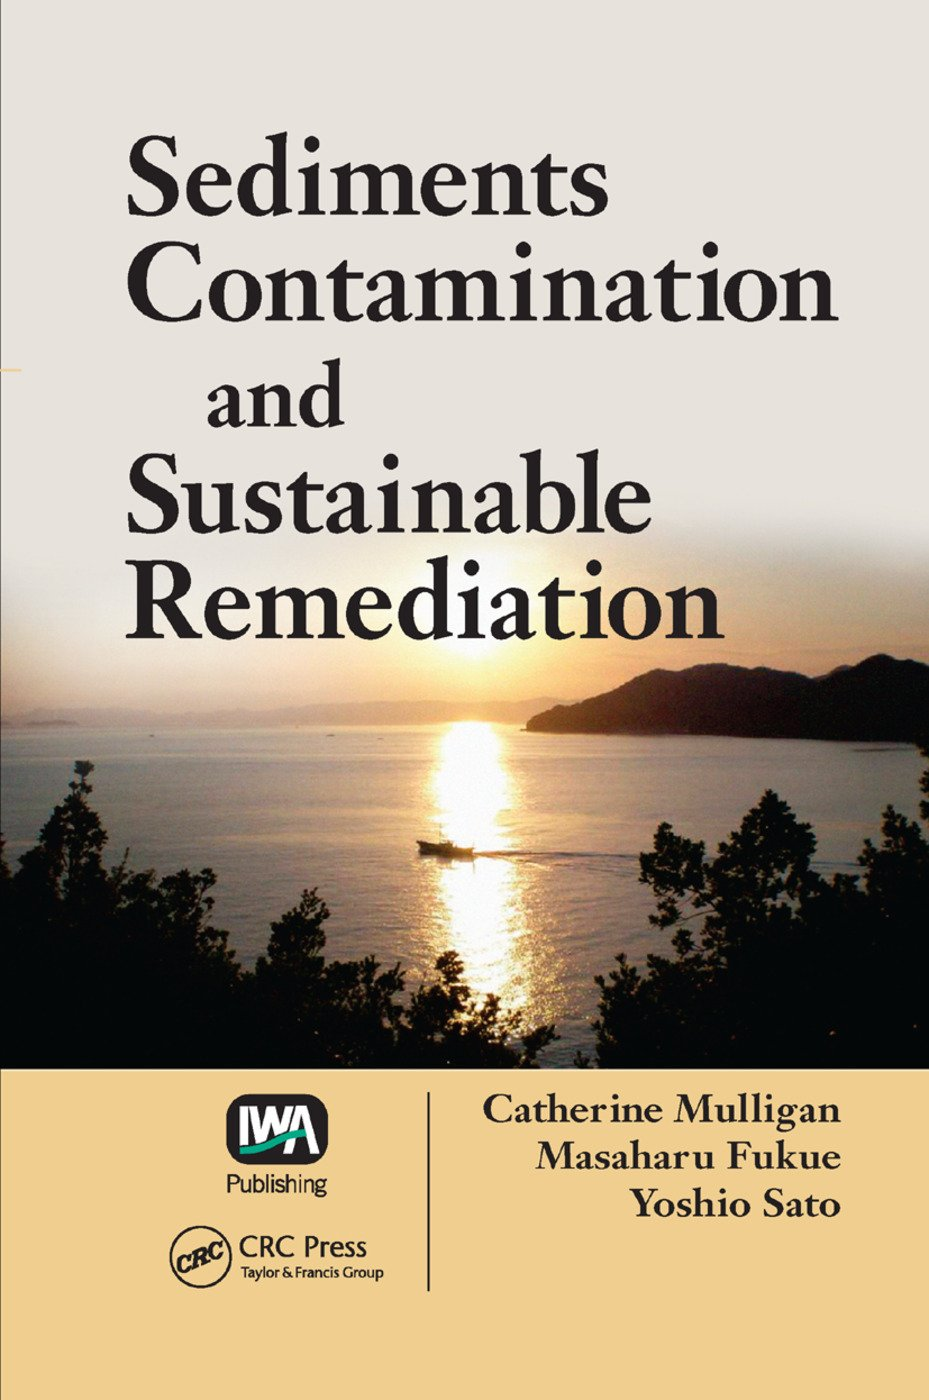 Sediments Contamination and Sustainable Remediation: 1st Edition (Paperback) book cover